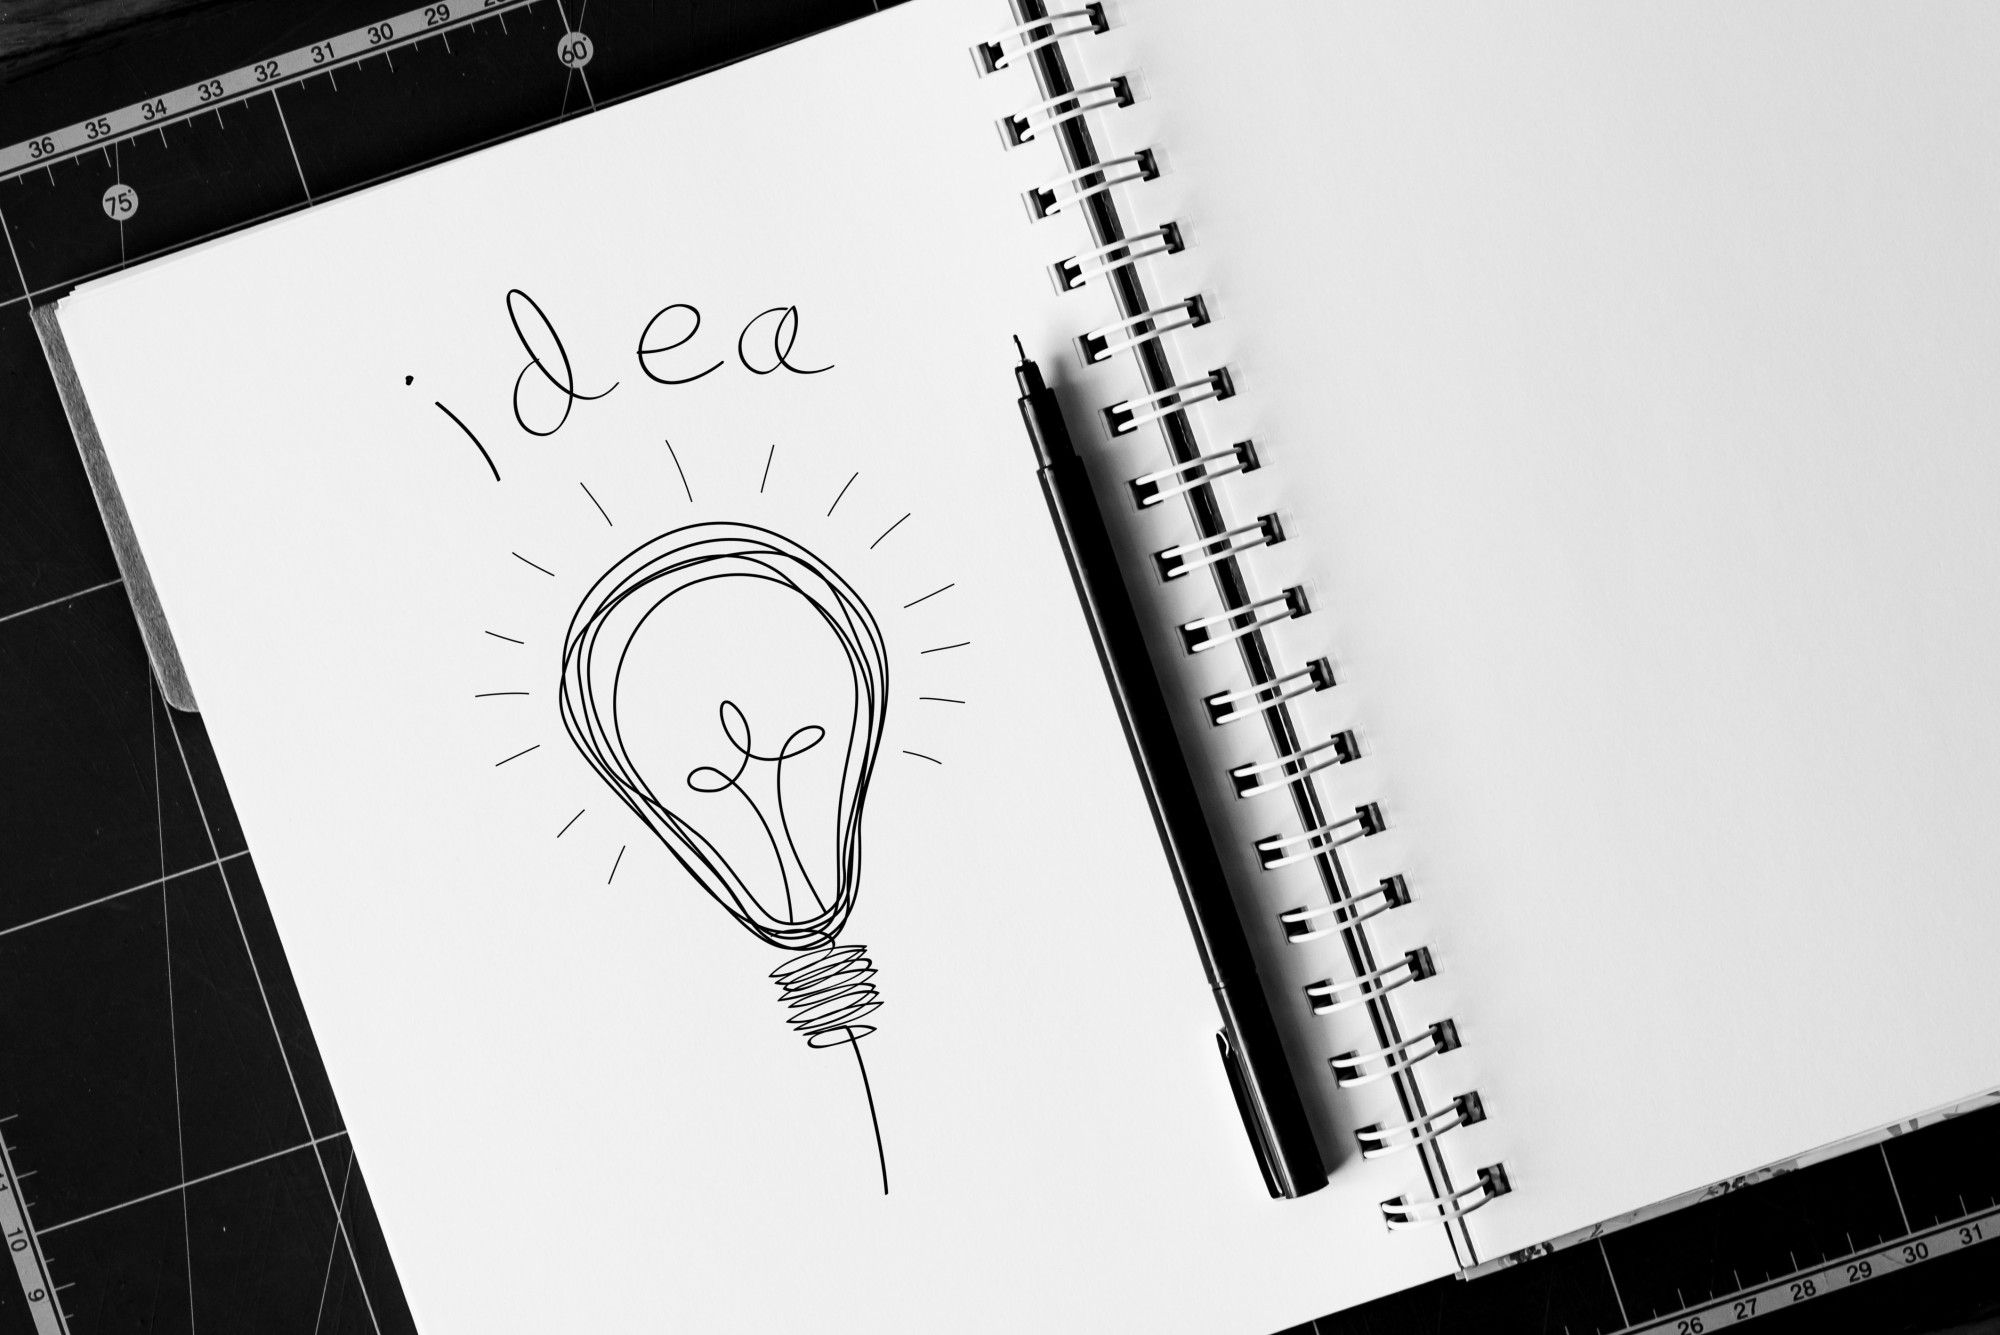 Identifying the Best Ideation Tools and Techniques to Begin a Project